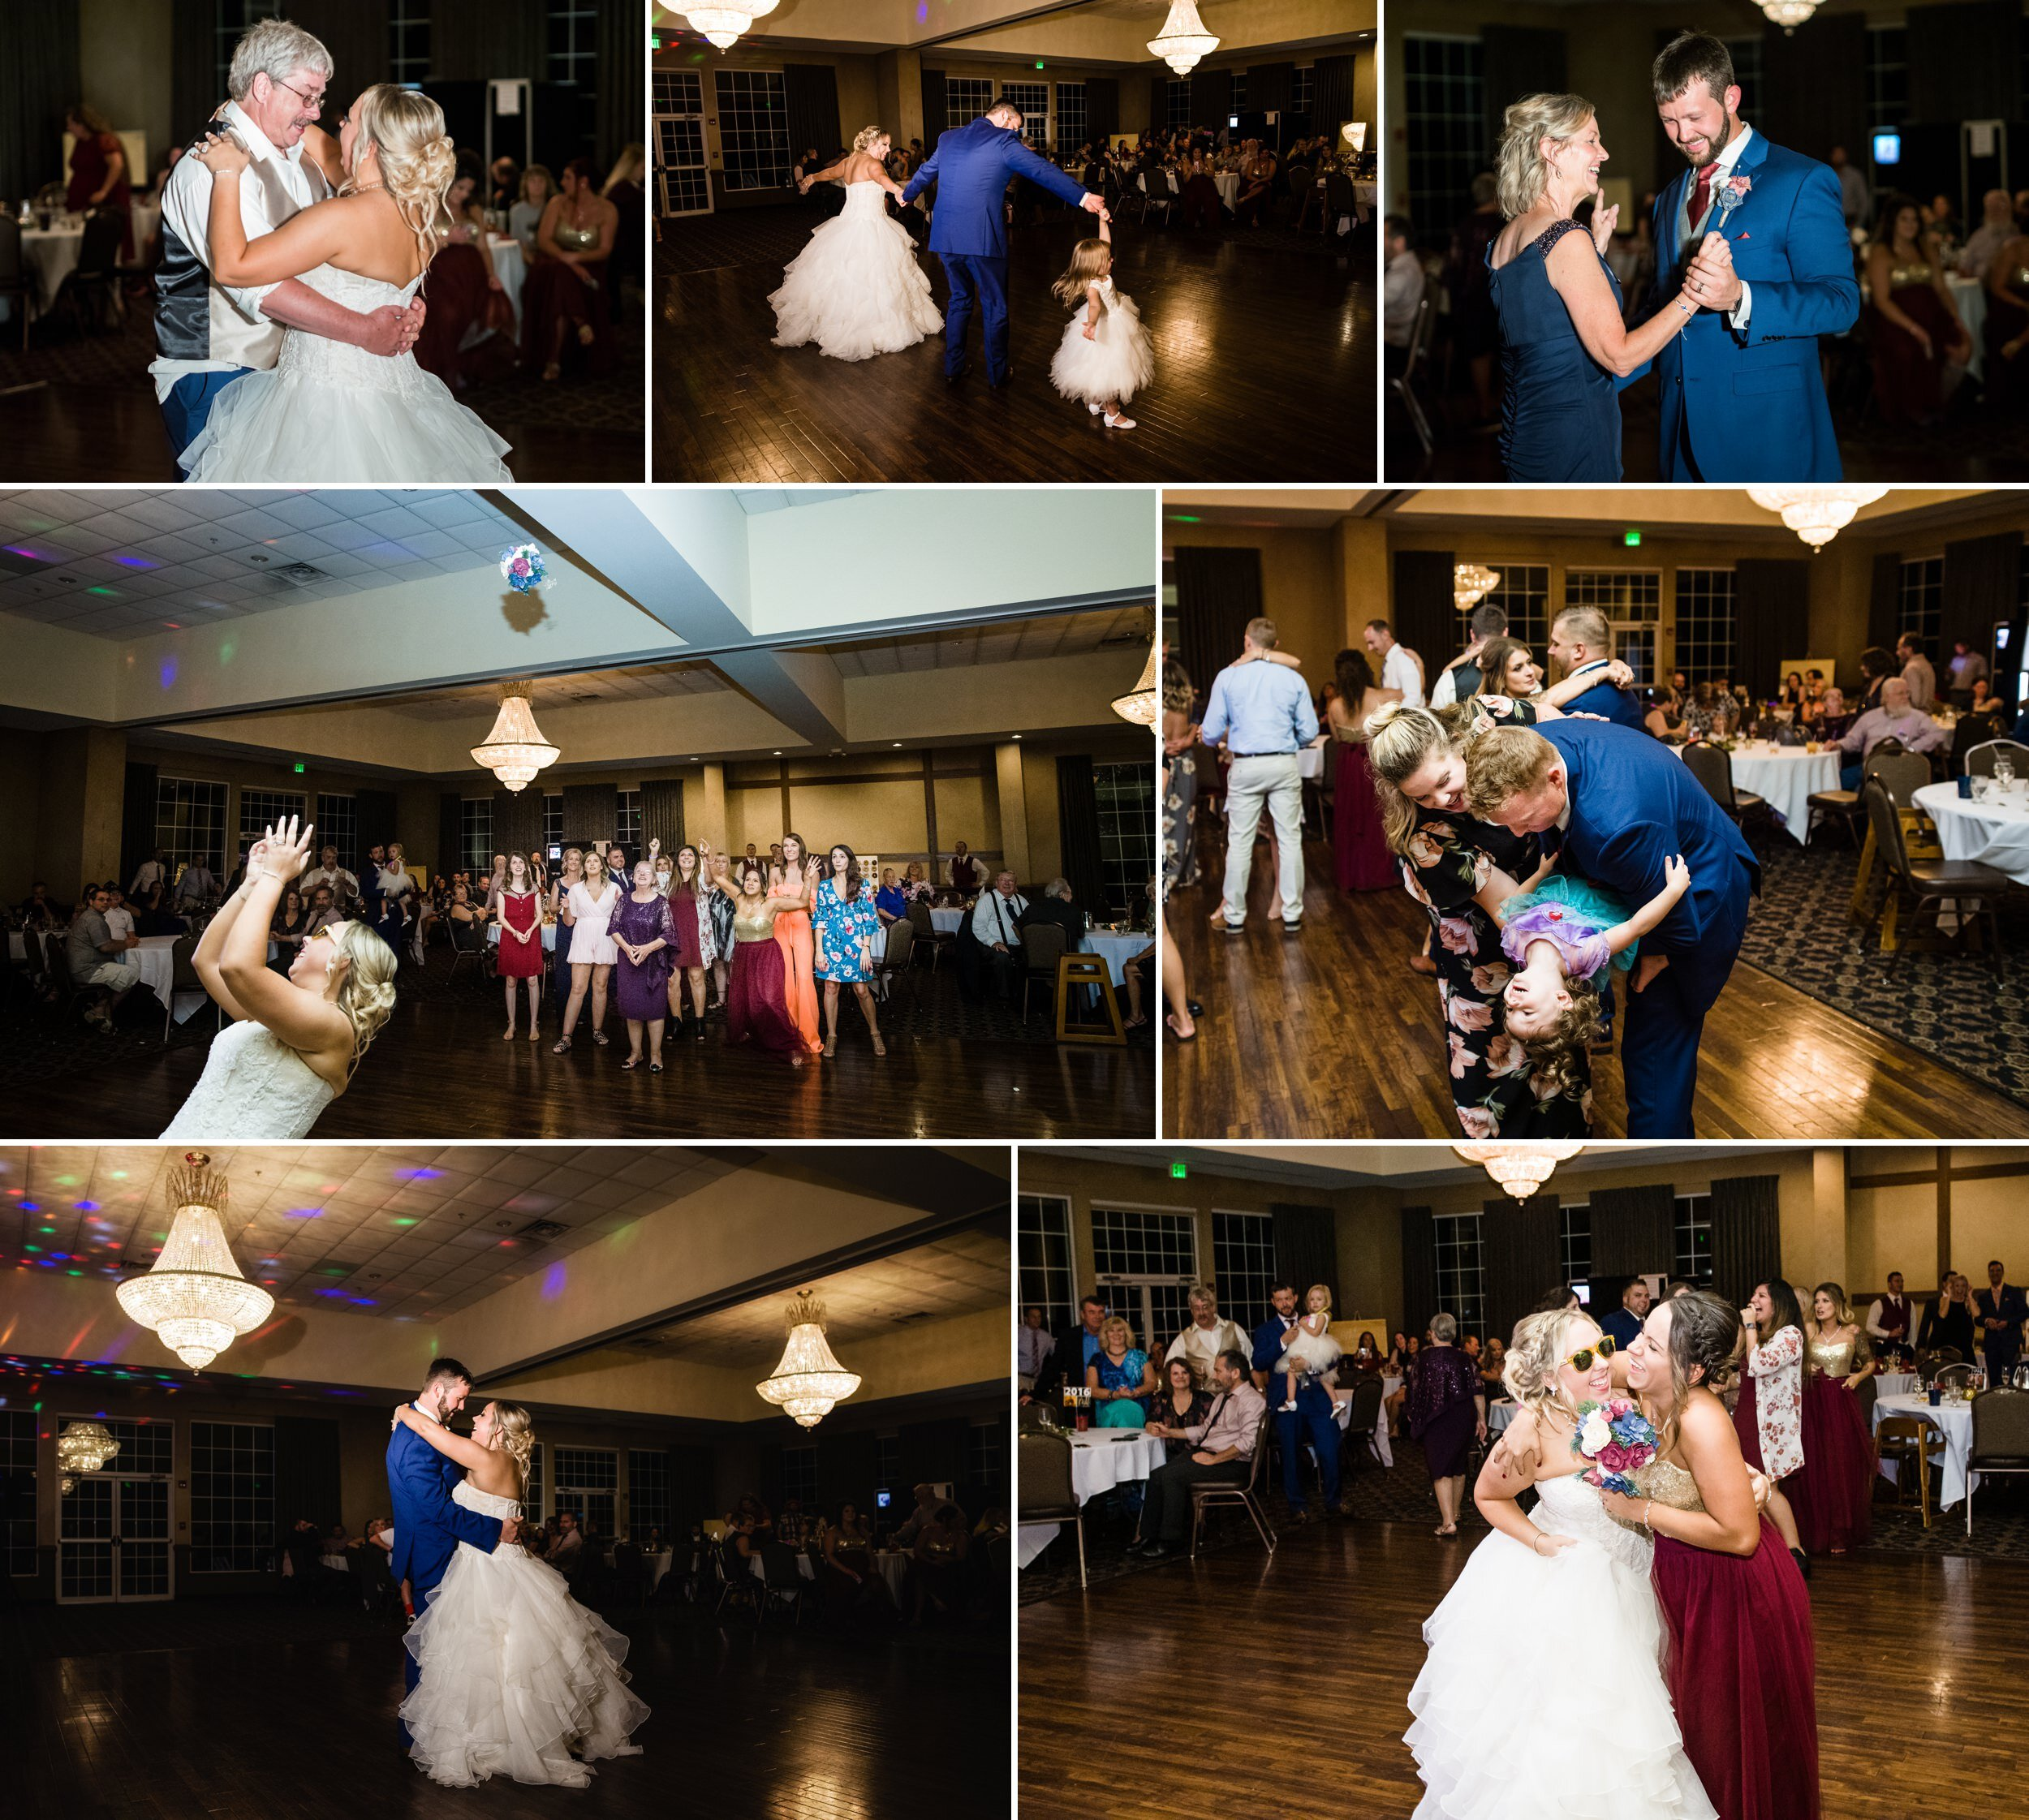 Dance floor fun during a wedding reception at Avalon Manor.